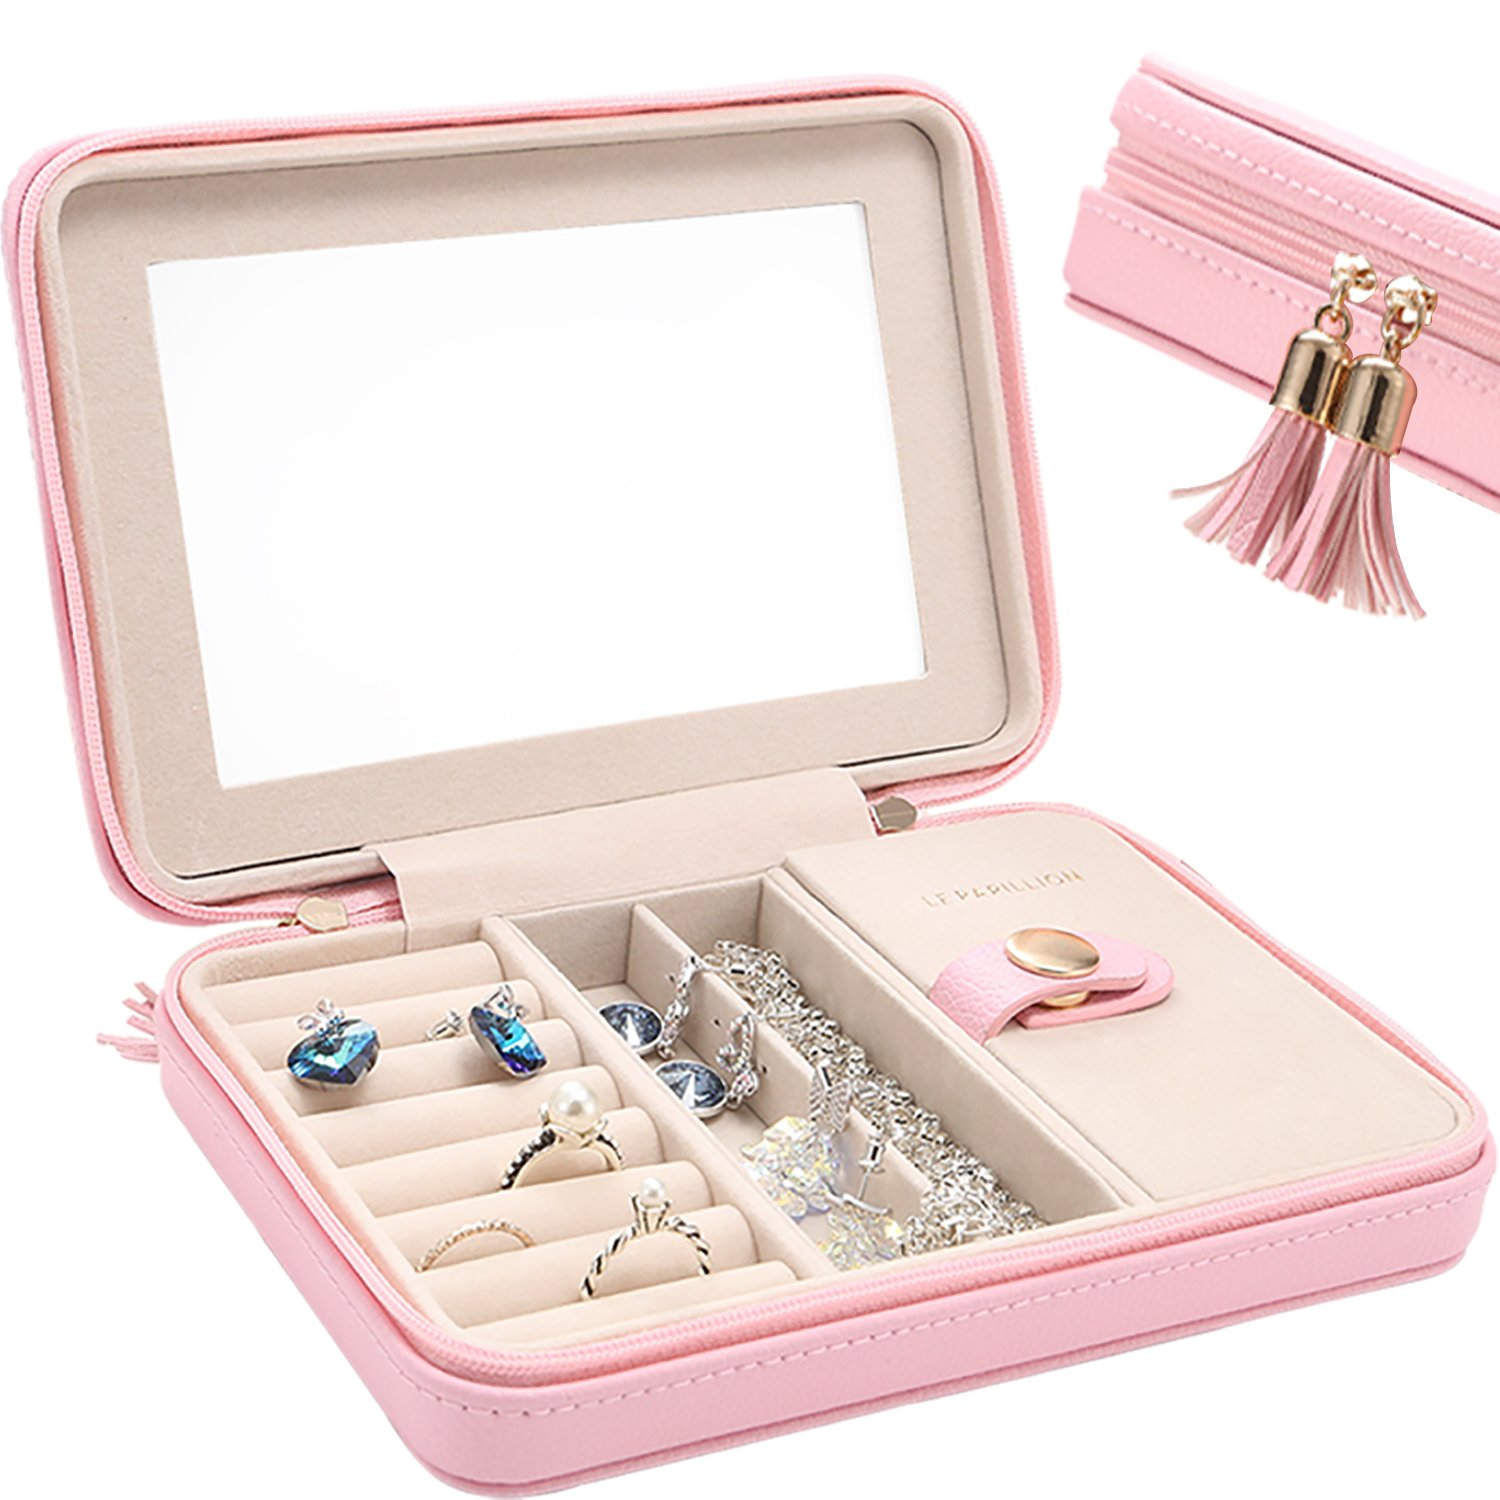 LE Papillion Small Jewelry Box Travel Jewelry Box Jewelry Travel Case Jewelry Organizer with Large Mirror, Gifts for Women, Great Gift Idea(Pink) by LE PAPILLION JEWELRY